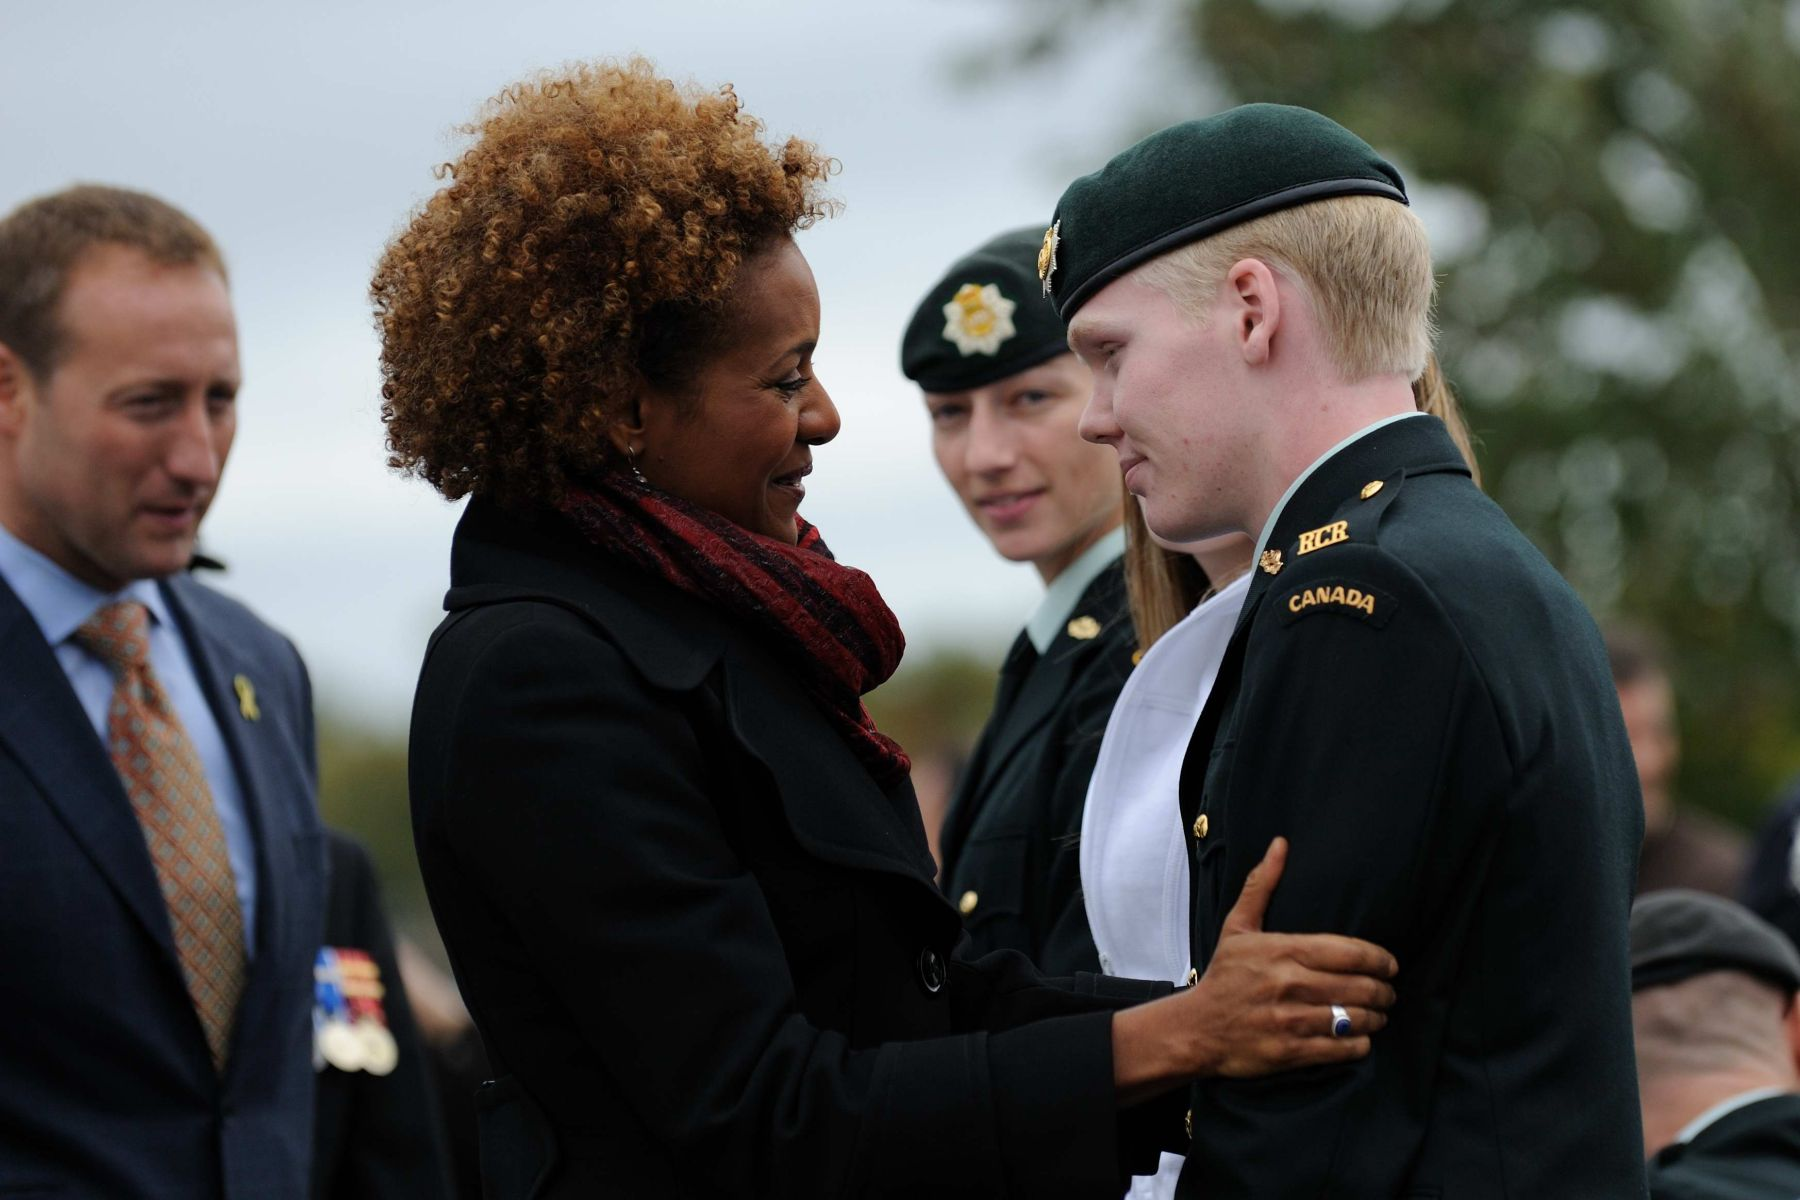 The Governor General also met with wounded soldier Private Tyler Kirbyson.